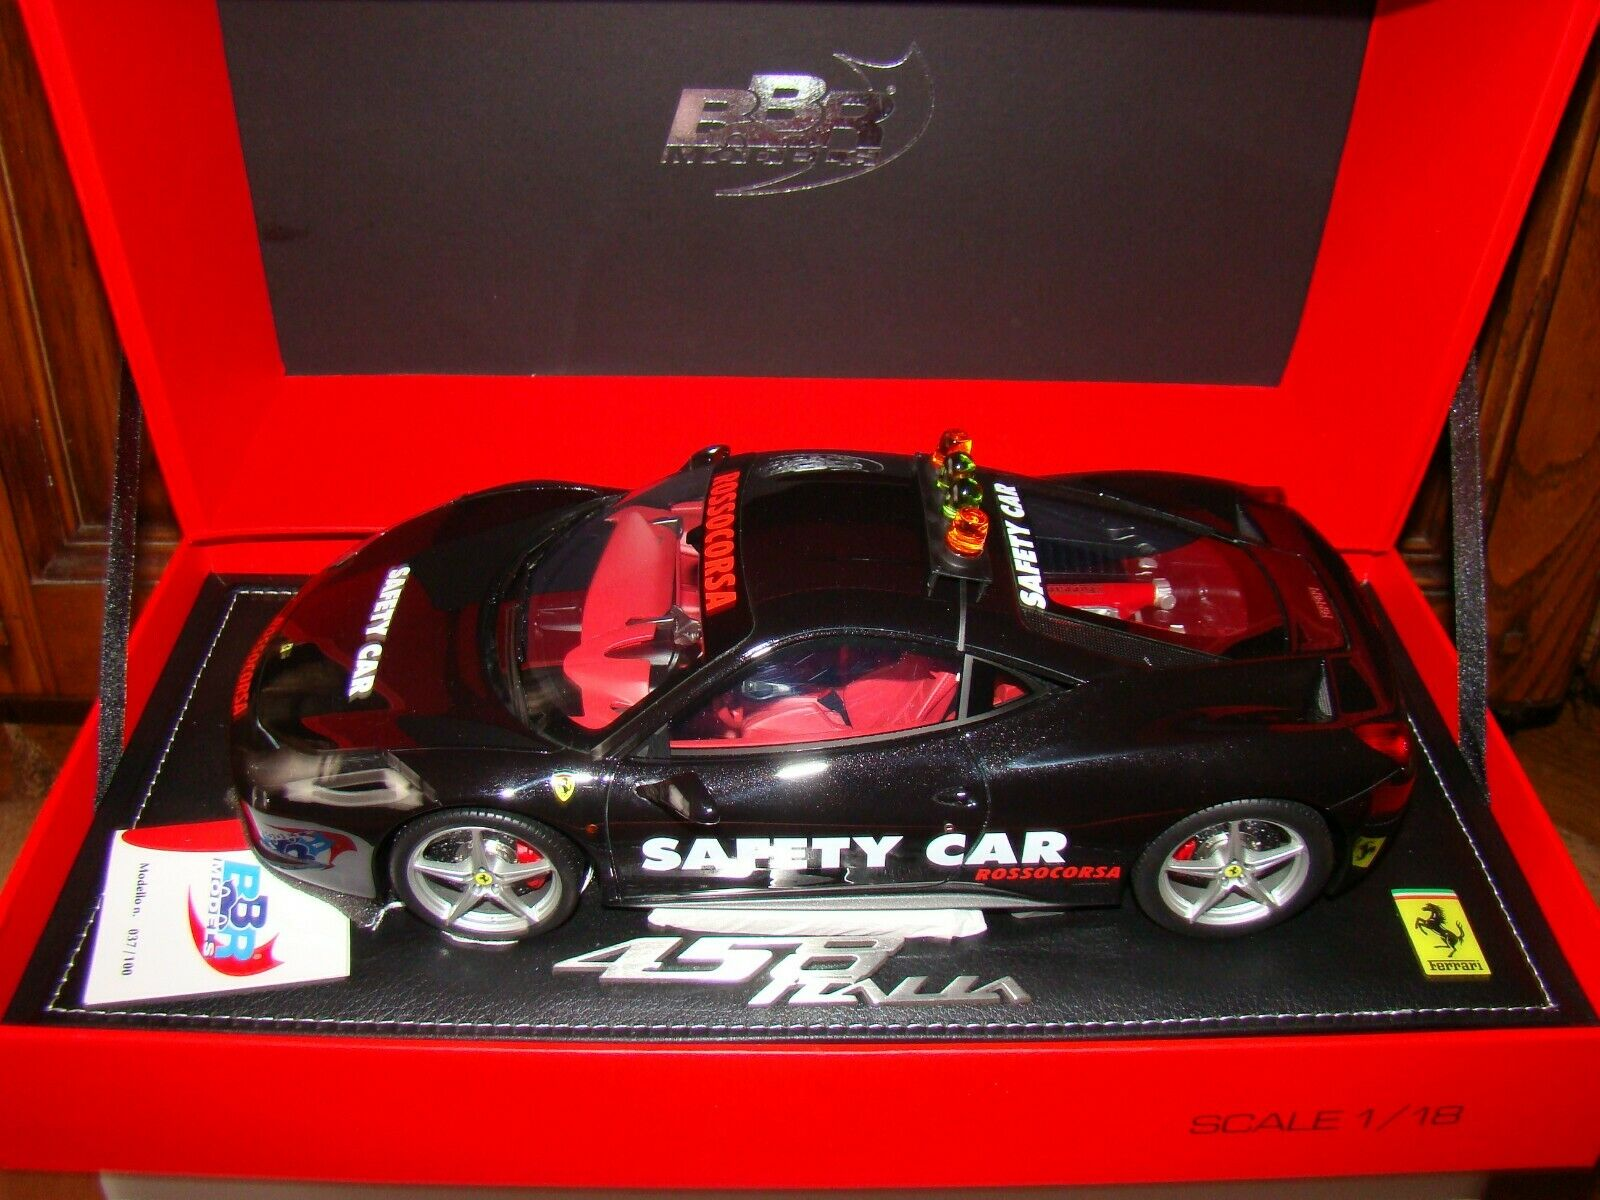 FERRARI 458 ITALIA   SAFETY CAR nero BRILLANT   BBR  1 18 EME   LIMITED EDITION